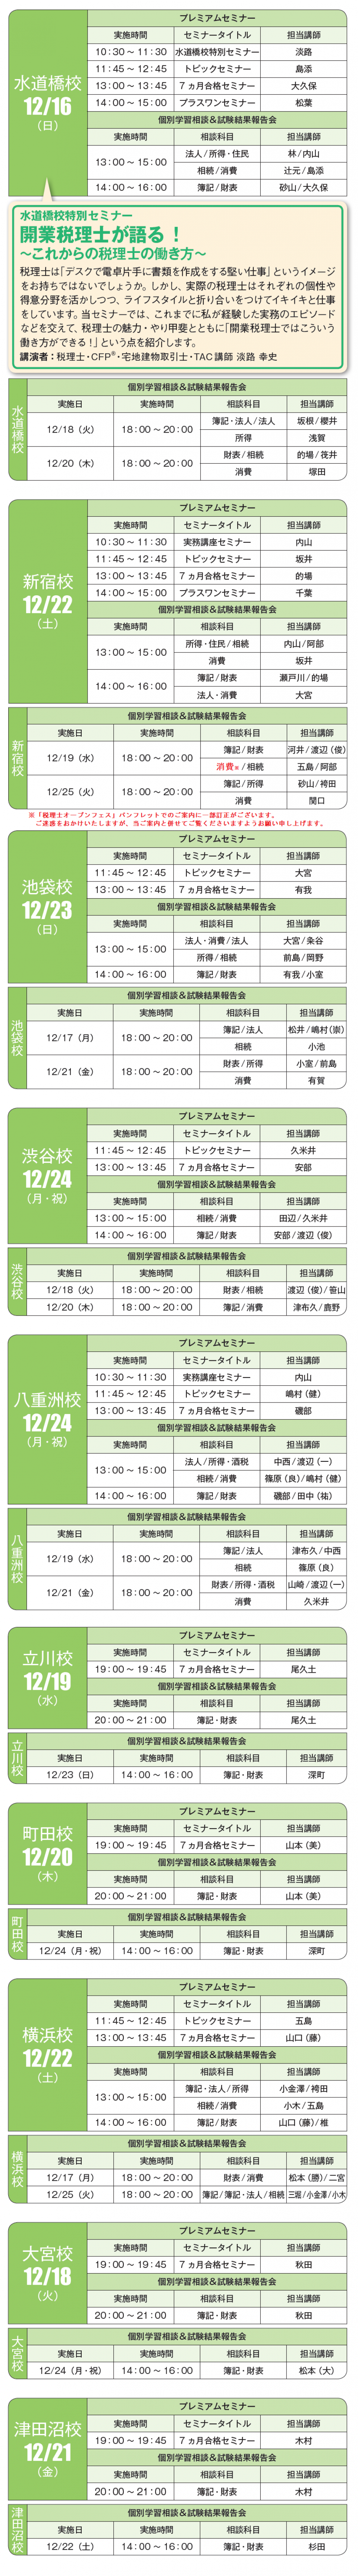 201812_zeiri_openfes_07.png